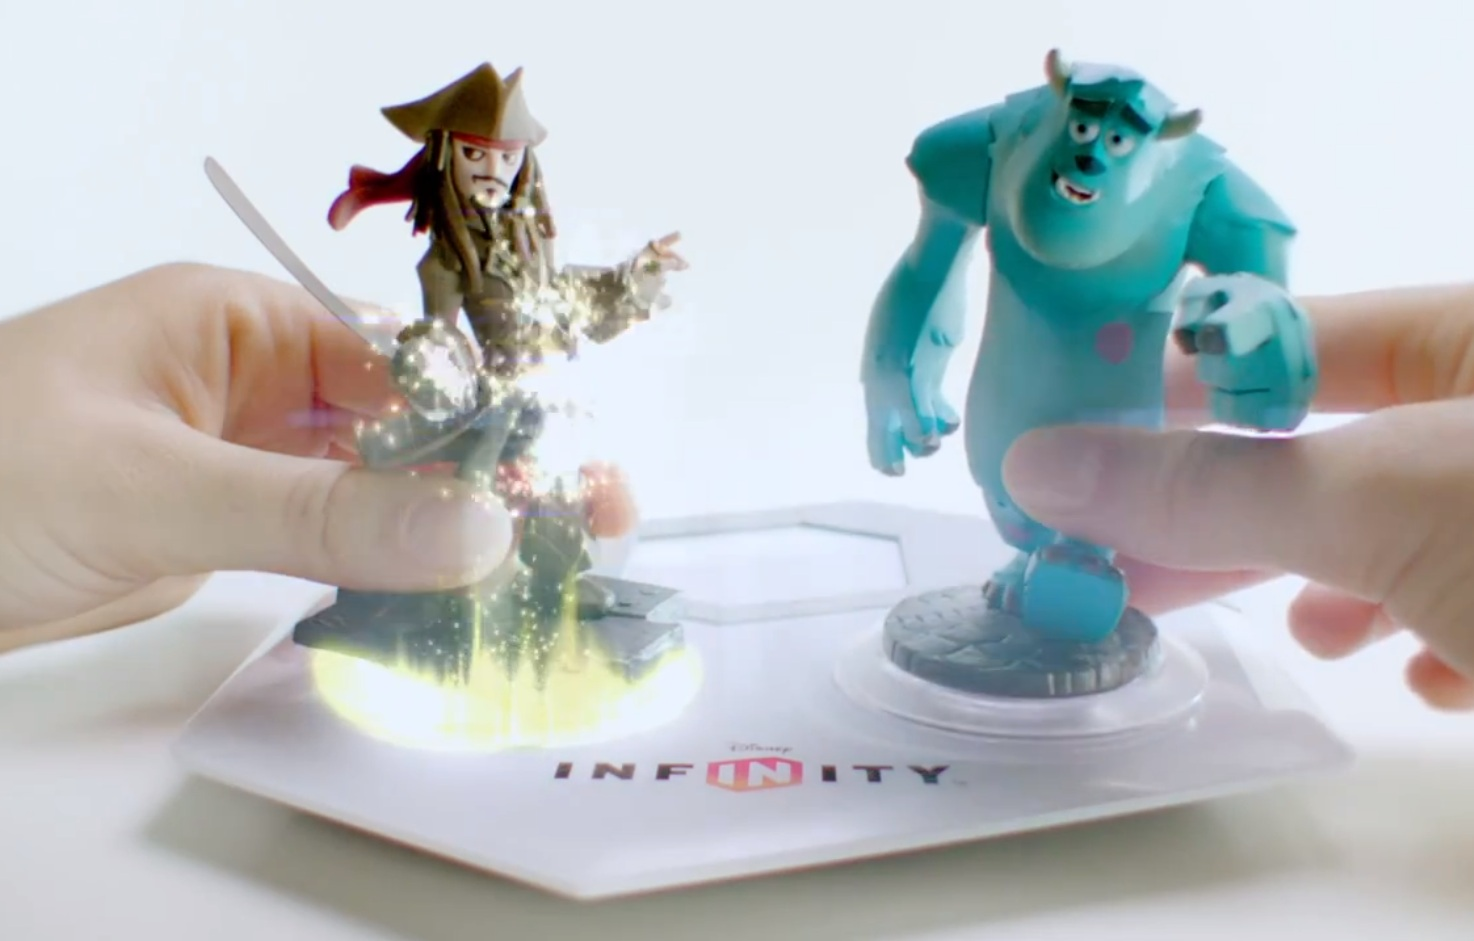 Disney Infinity – Barbossa, Davy Jones, Captain Jack Sparrow trailers